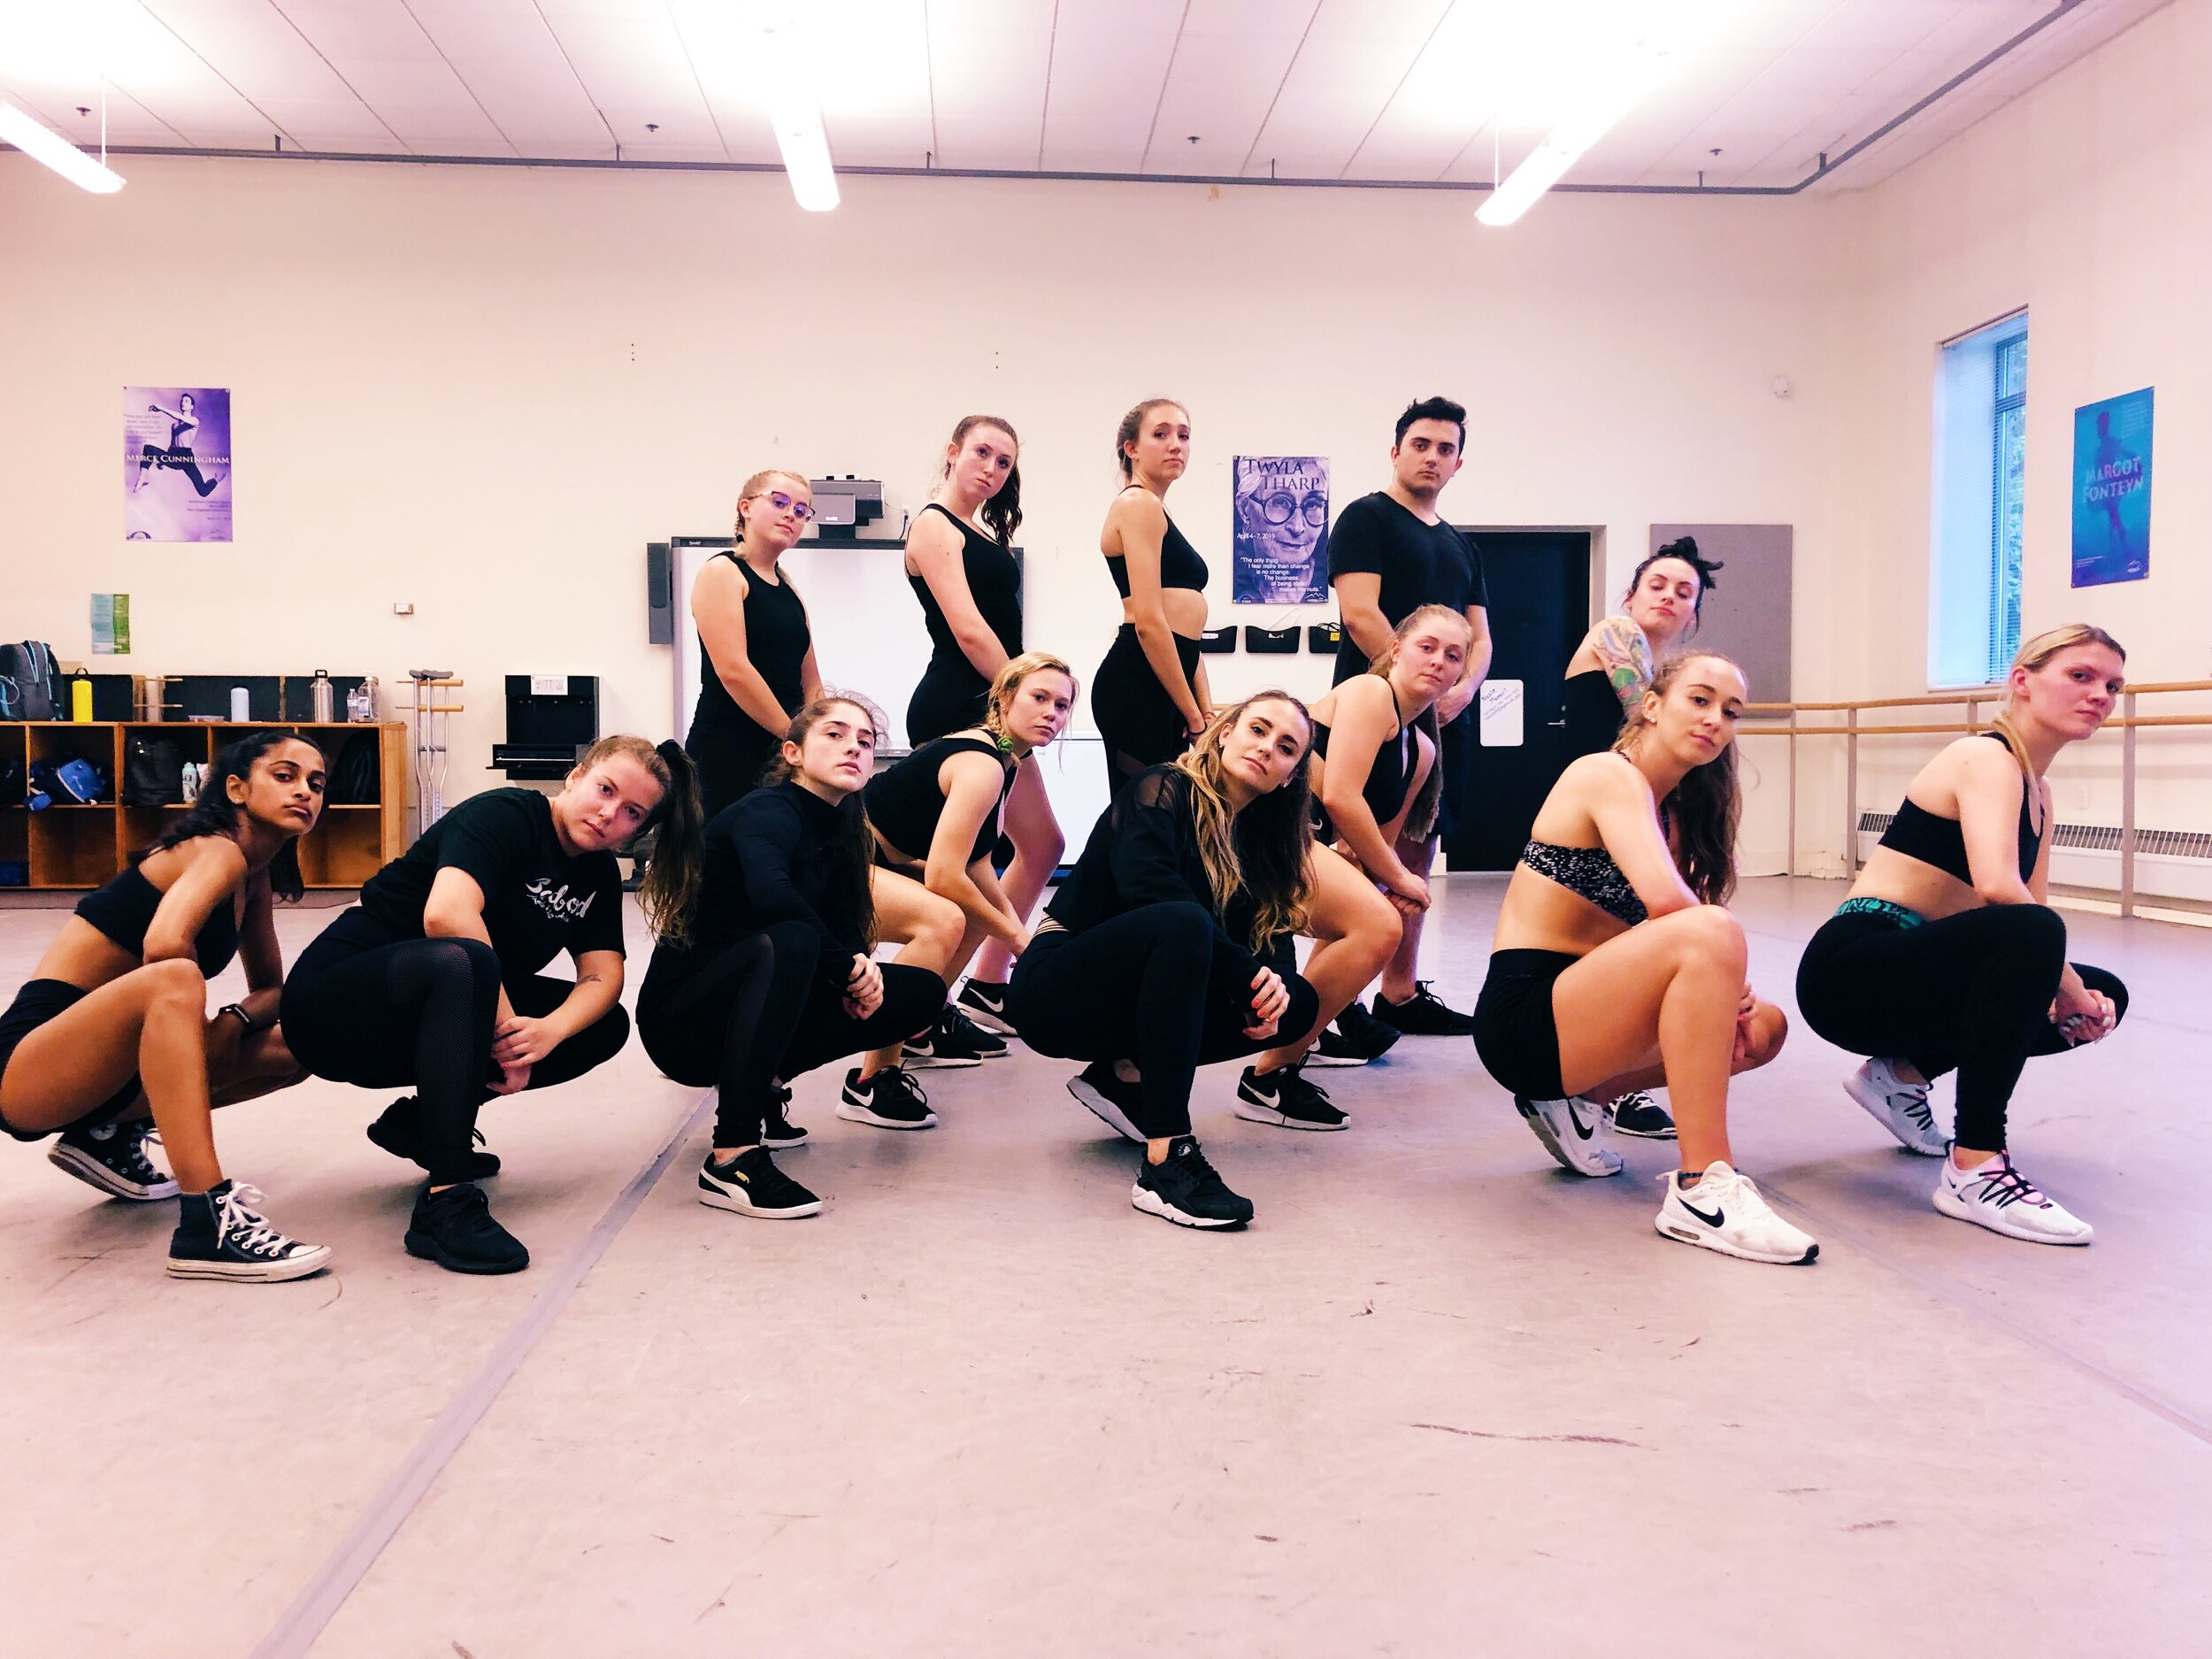 Plymouth State University Dance Team